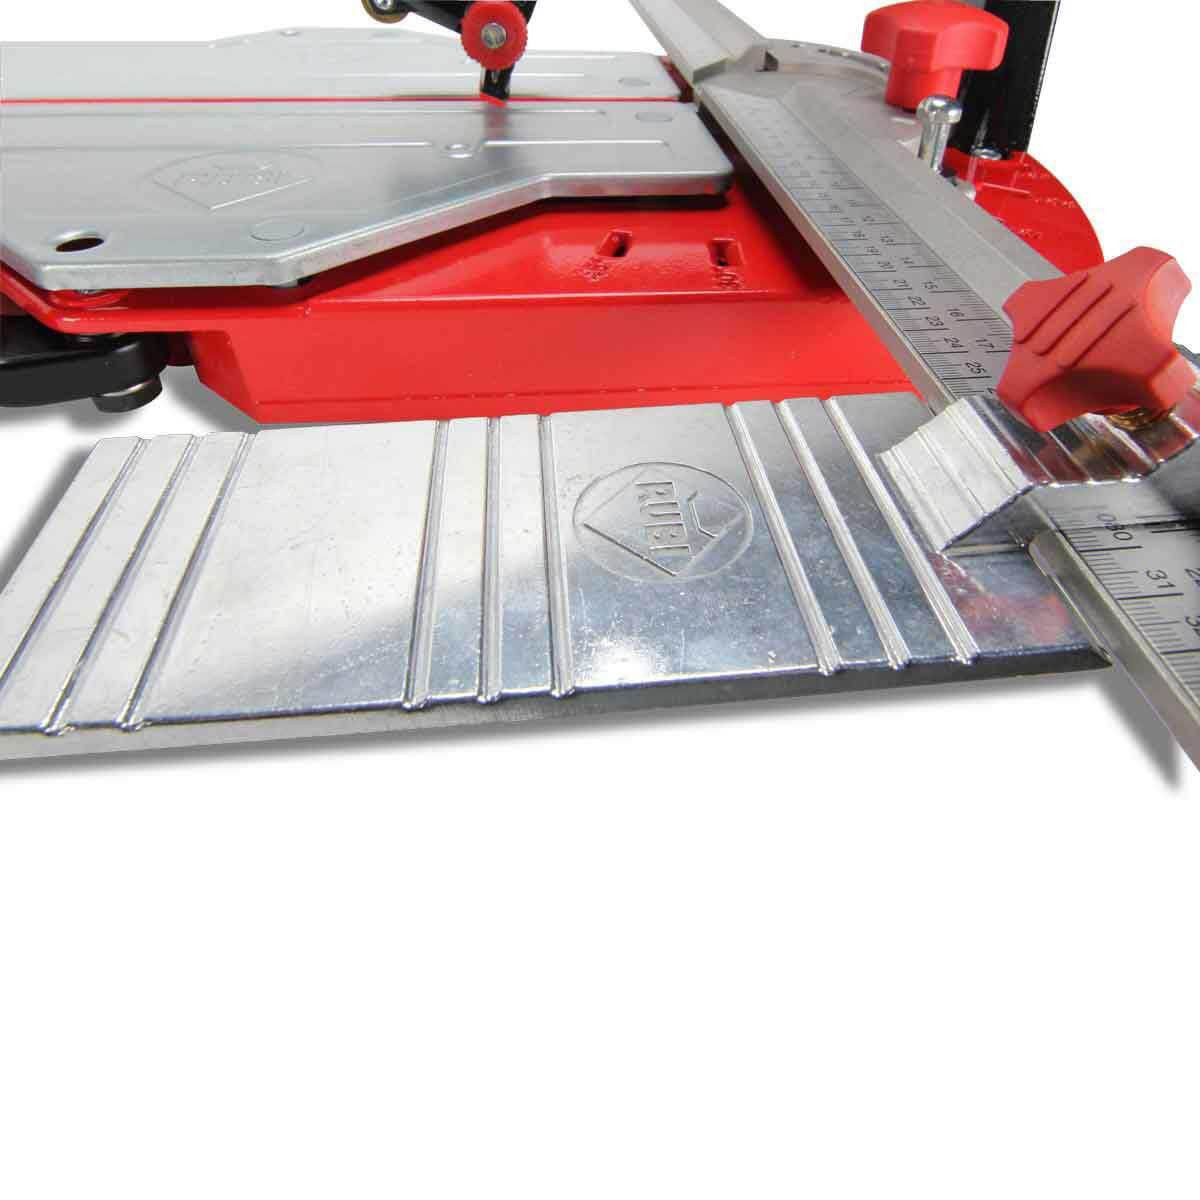 Rubi TP-T tile cutter breaking